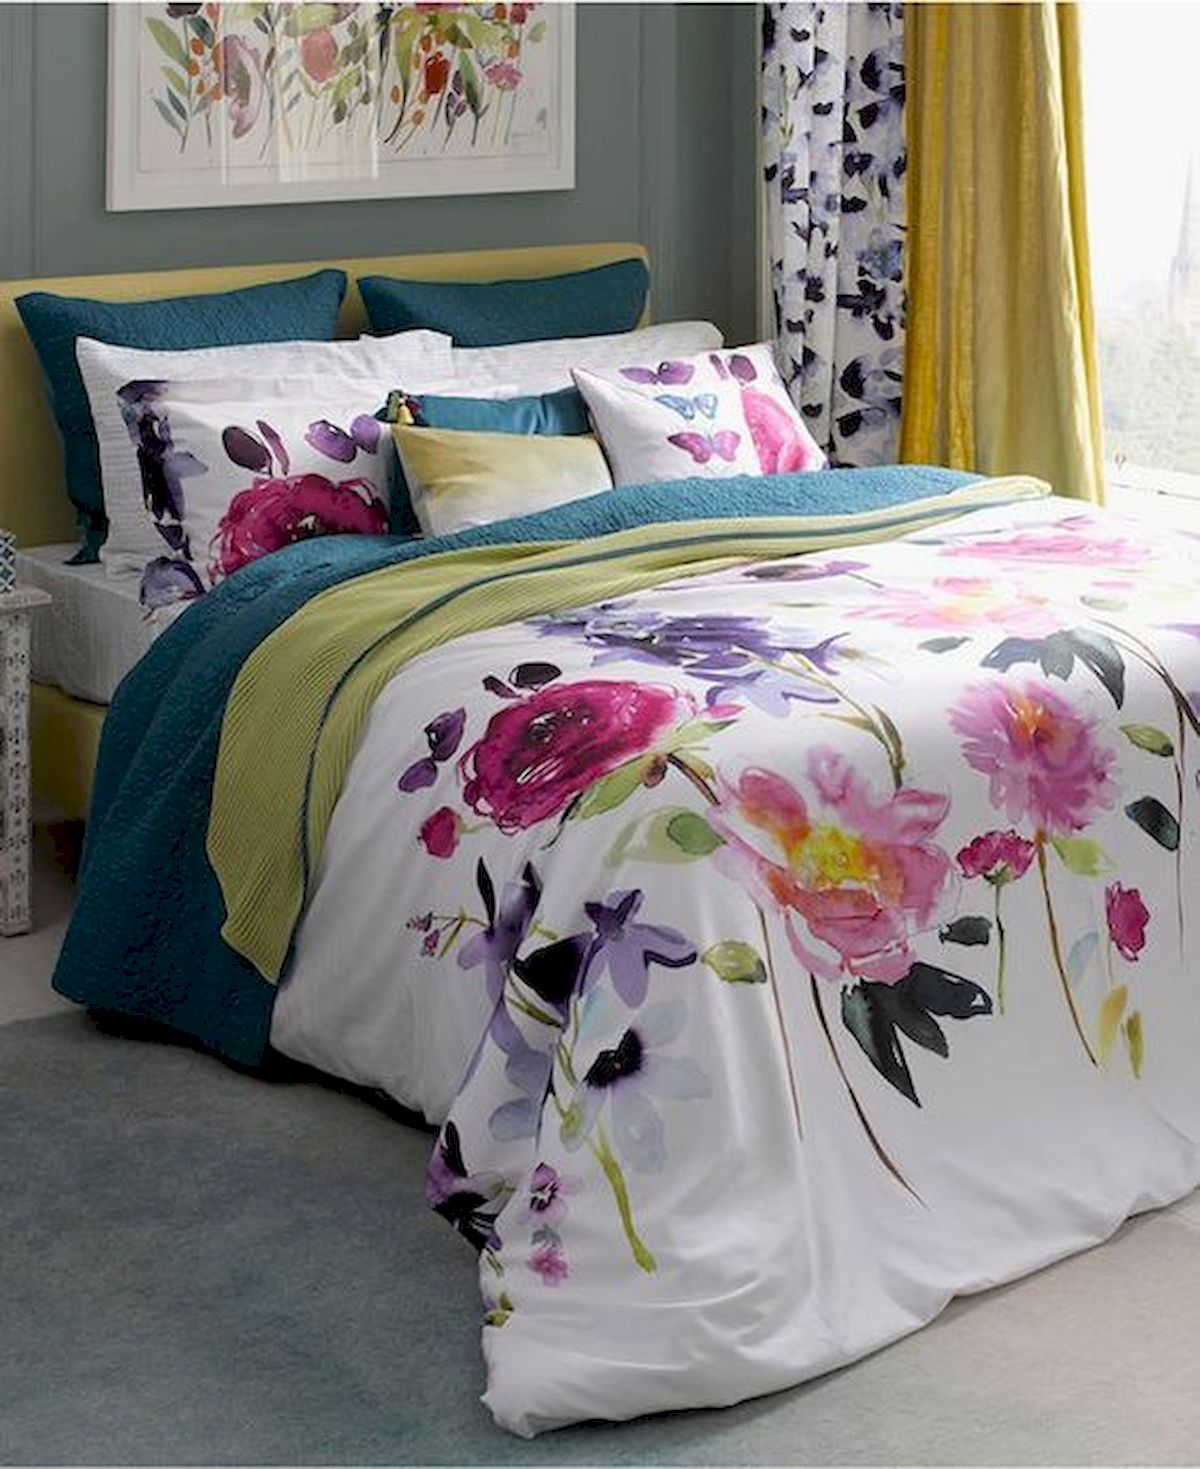 70 Beautiful DIY Colorful Bedroom Design Ideas and Remodel (37)